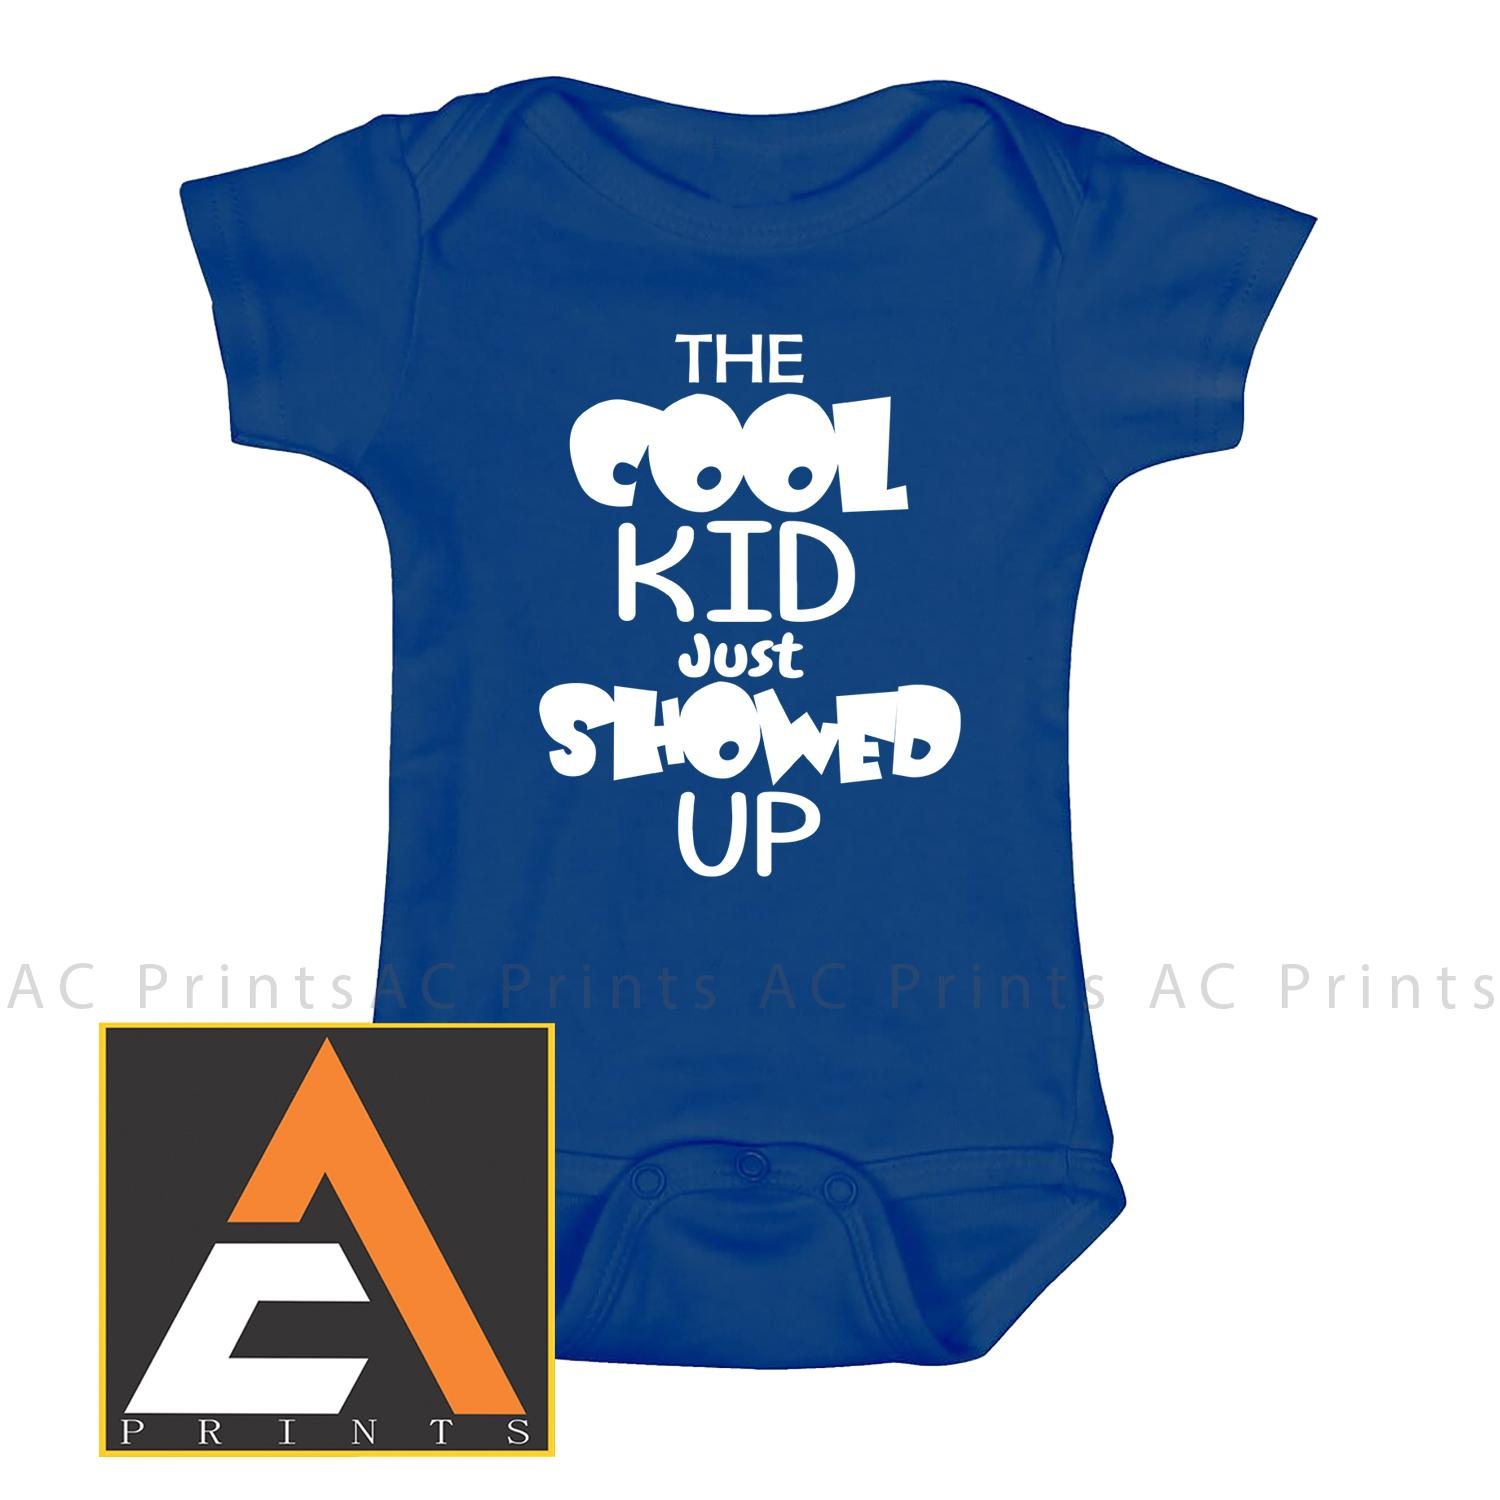 6405cb1ae AC Prints THE COOL KID JUST SHOWED UP Onesies One piece Bodysuit for Baby  Boy Baby